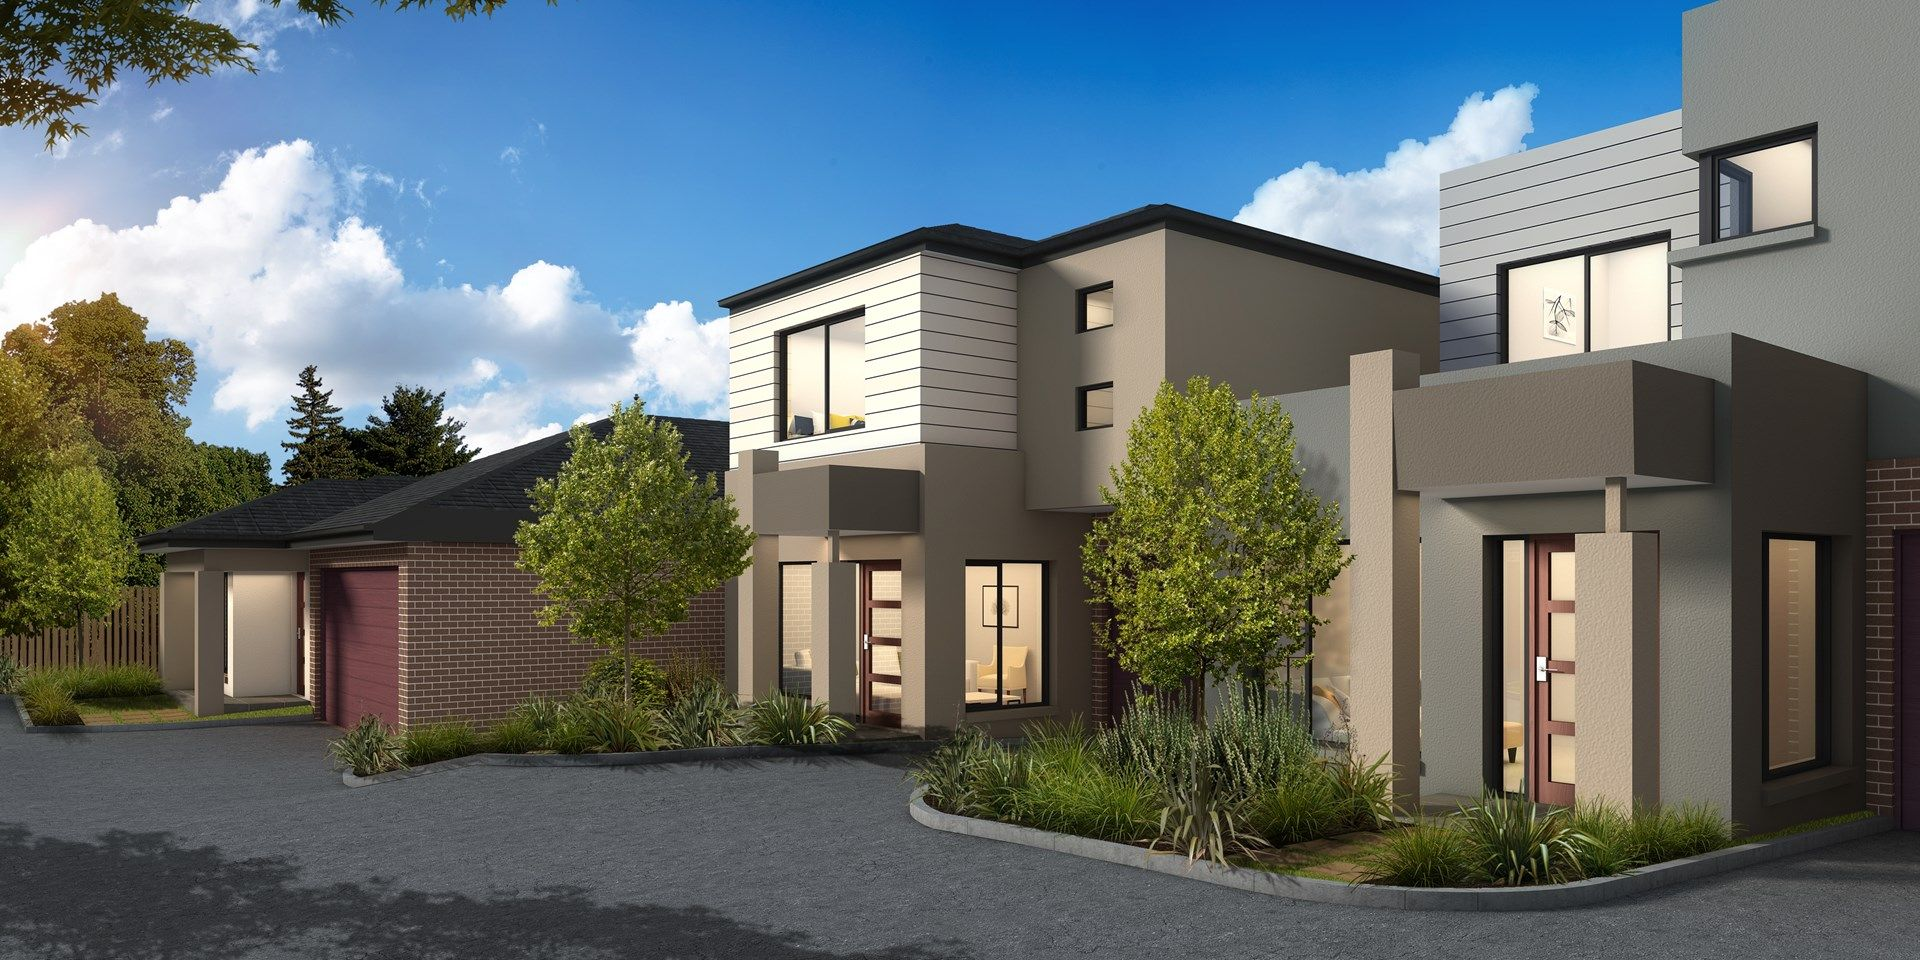 3/147-149 Golf Links Road, Berwick VIC 3806, Image 2